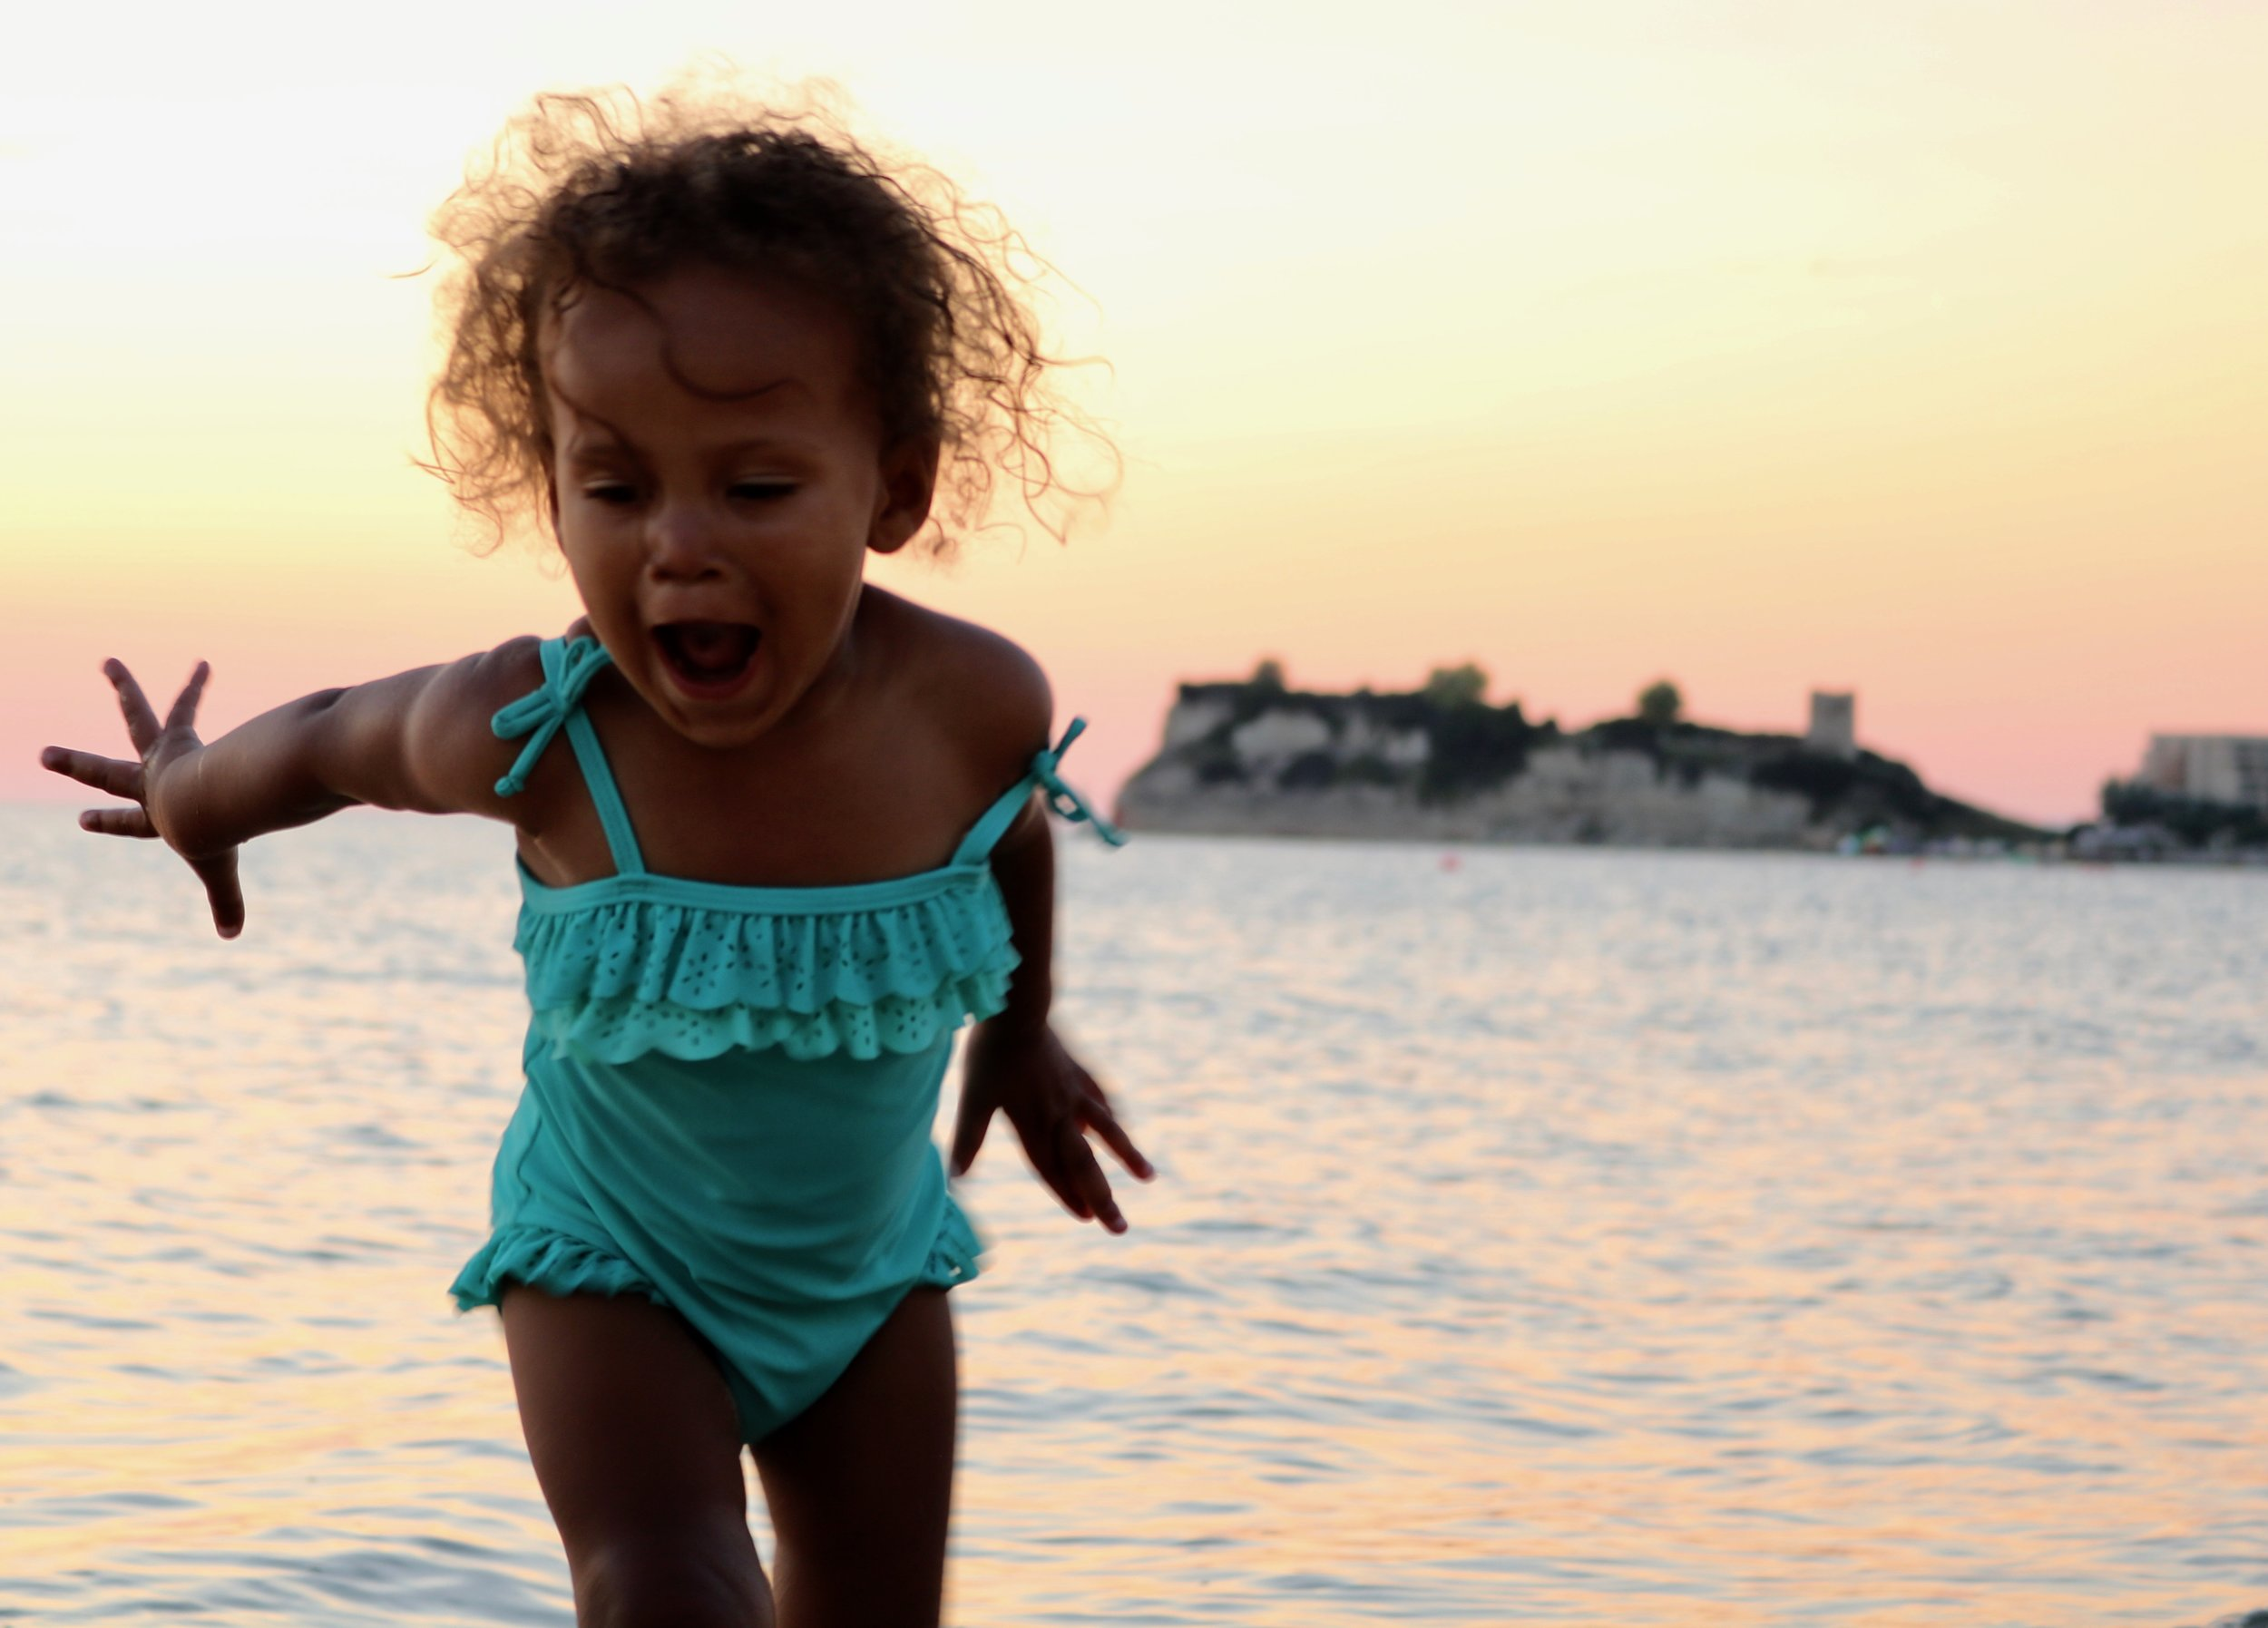 Lily at the beach outside Thessaloniki at Sunset (photo cred: Michael Jeje)